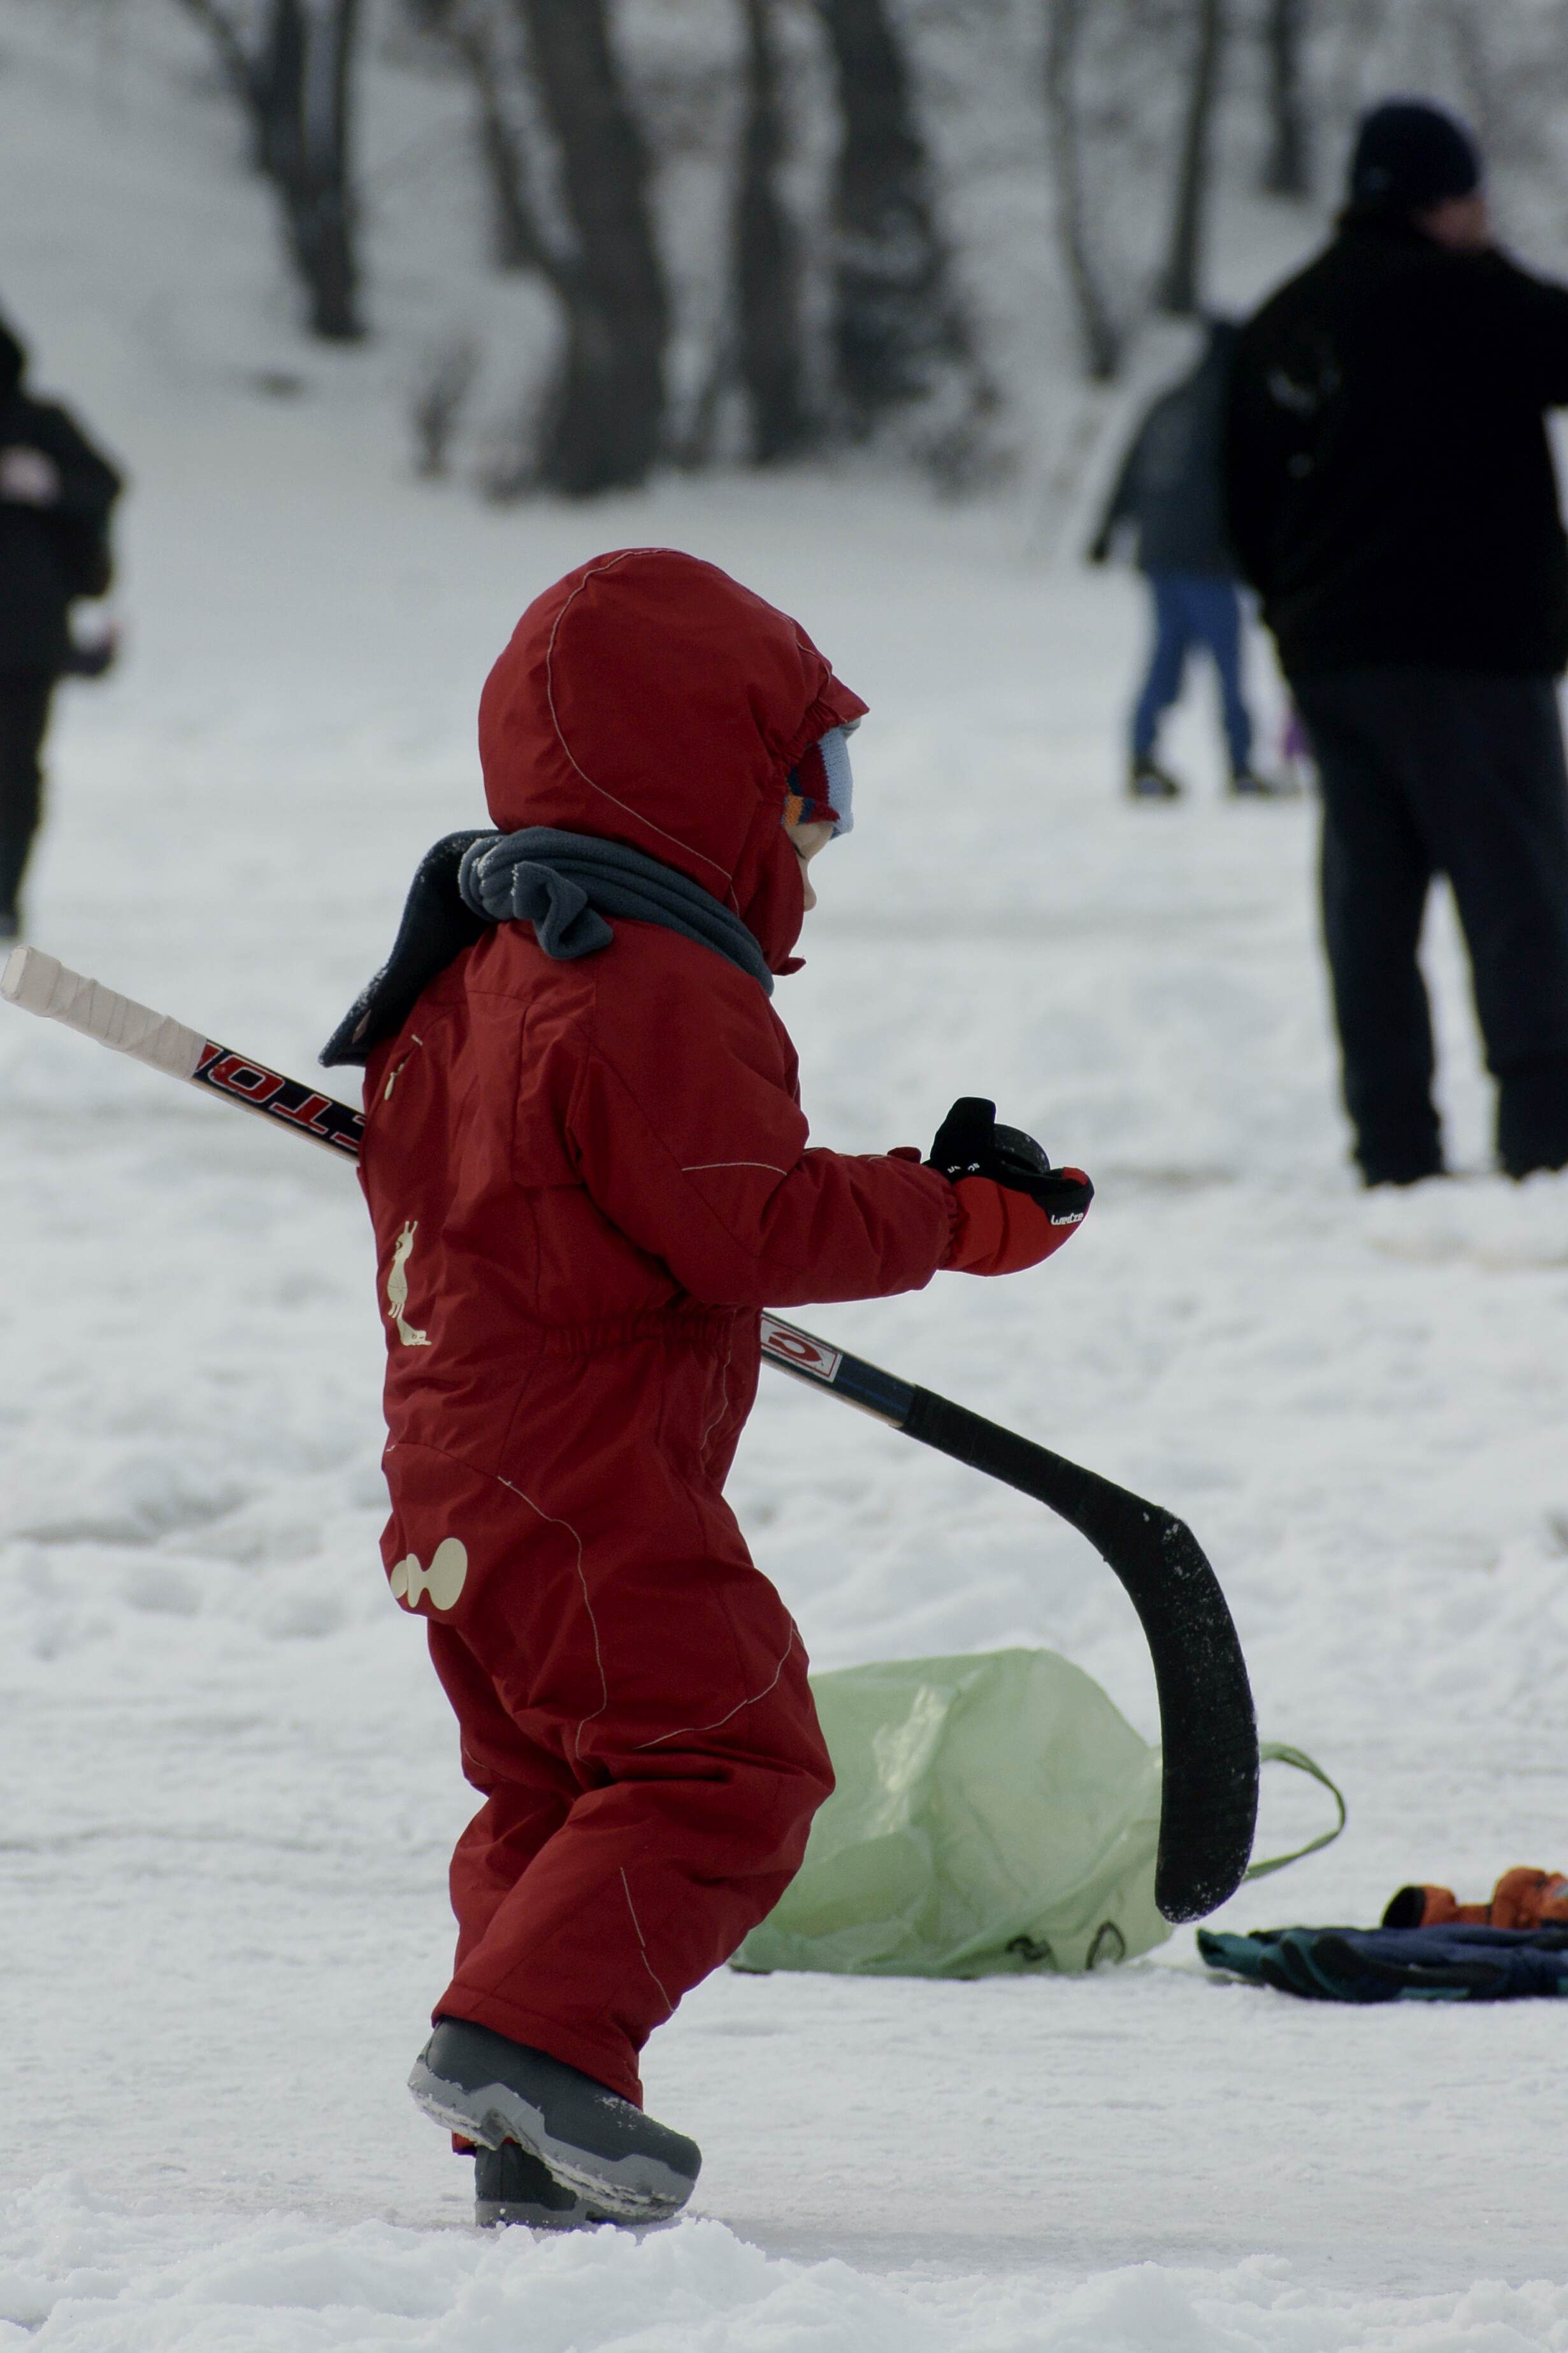 Young child playing ice hockey. Photo by Karpati Gabor